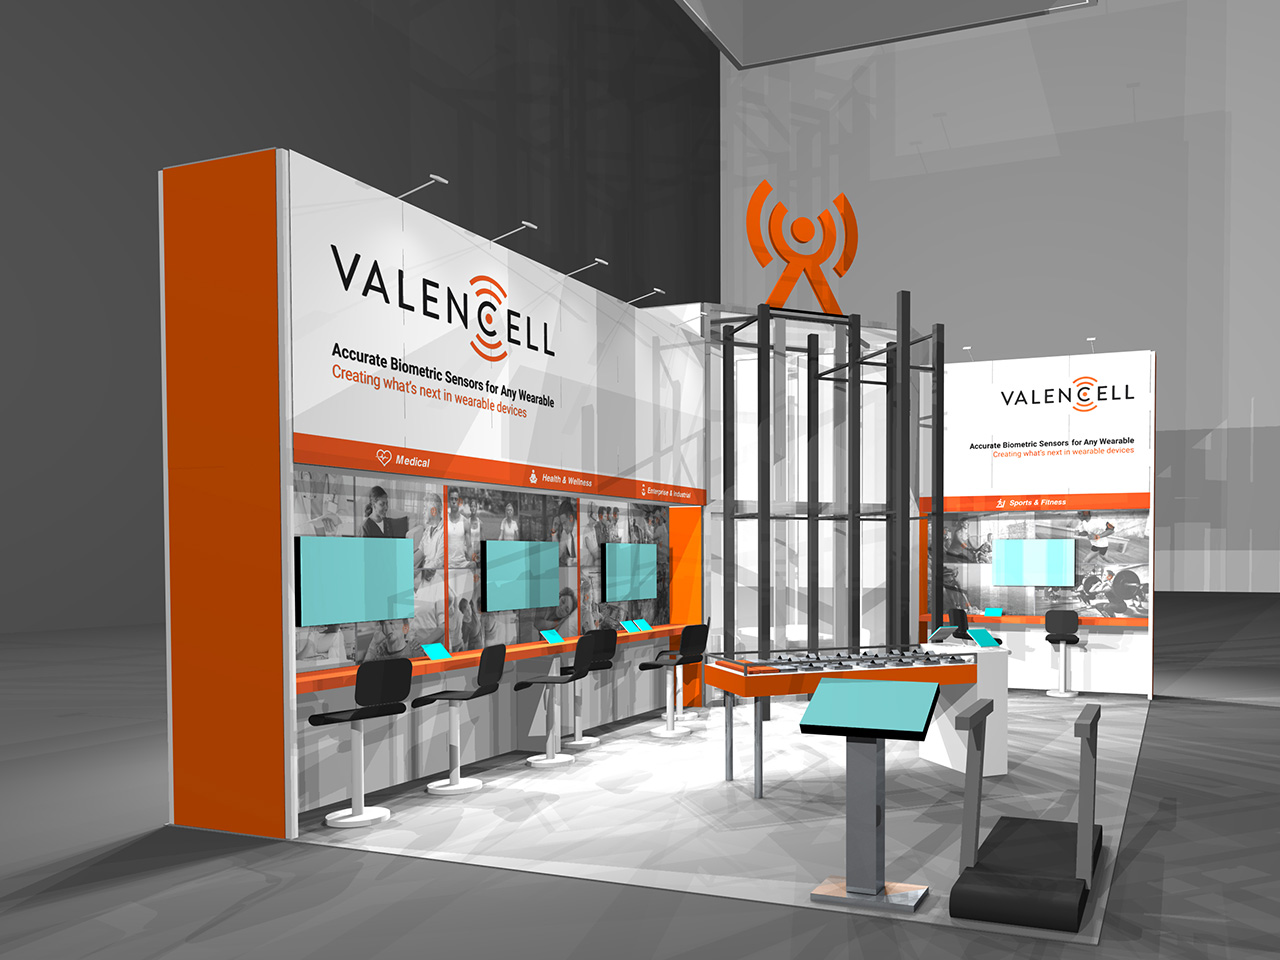 Trade Show Booth Graphic Design : Trade show exhibit archives point concepts